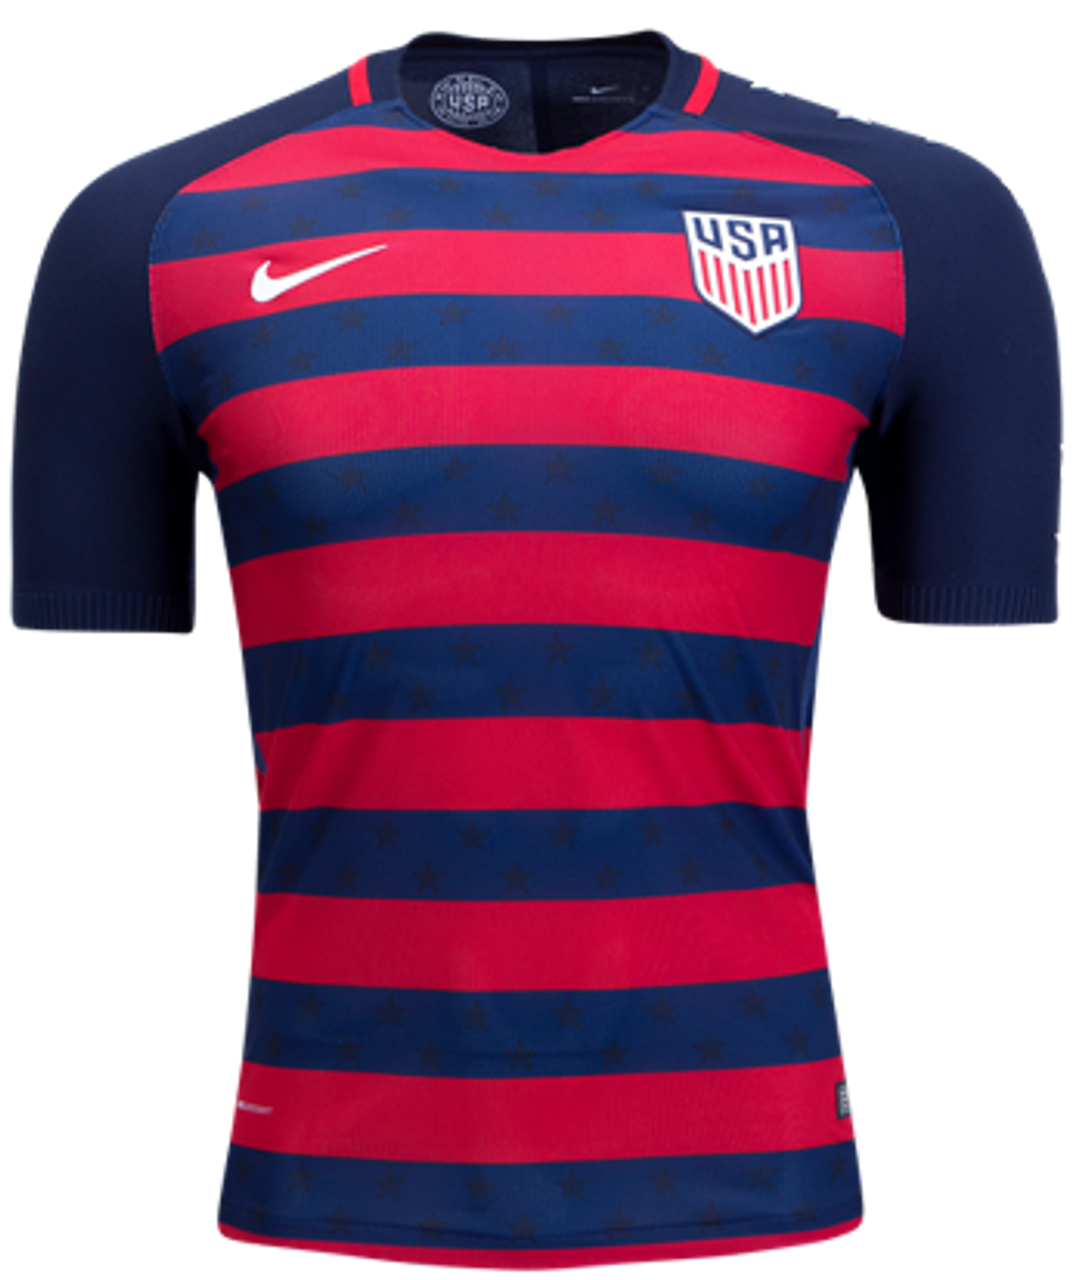 1e5777626af NIKE USA 2017 AUTHENTIC GOLD CUP JERSEY - Soccer Plus